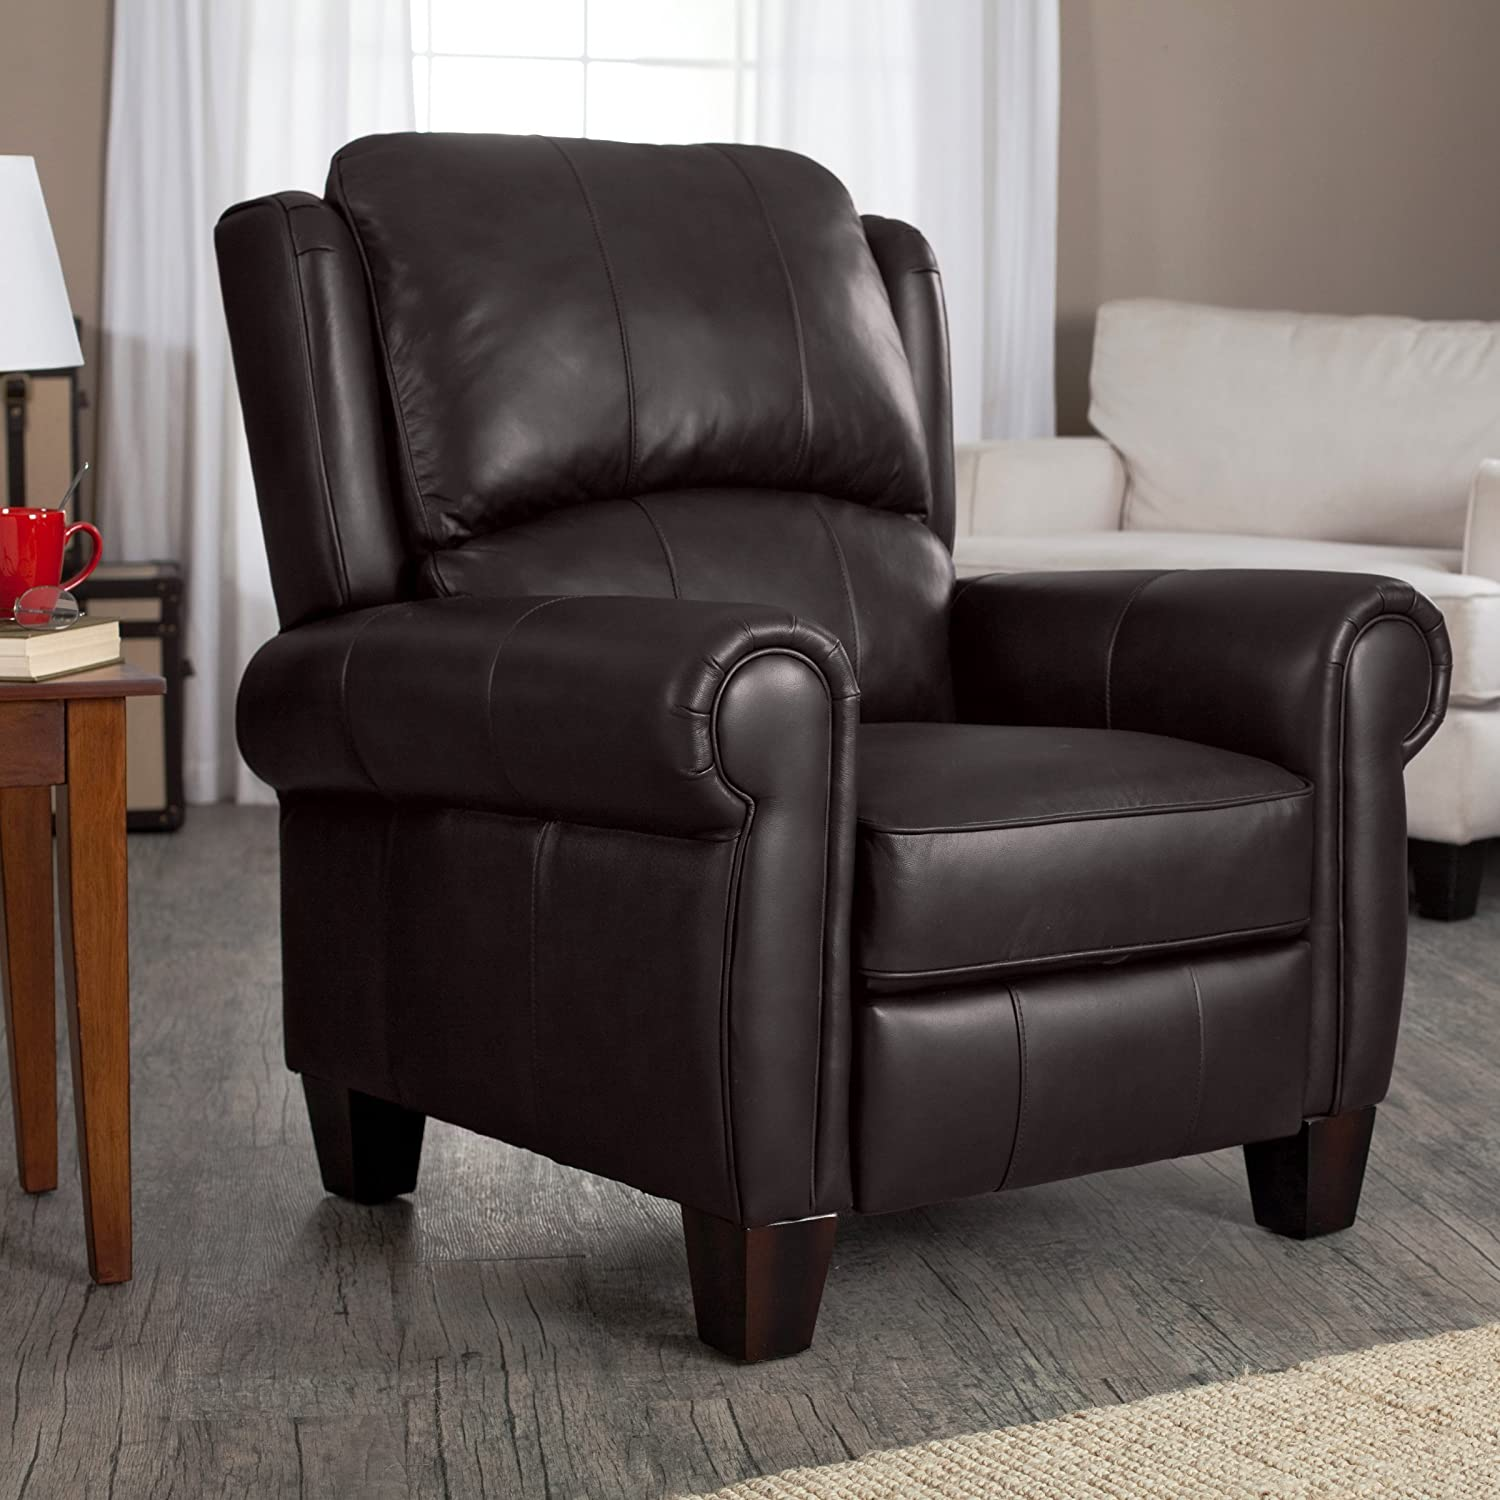 Super Brown Leather Recliner Living Room Furniture Barcalounger Office Chair Recliners Charleston Wingback Buy Today Lamtechconsult Wood Chair Design Ideas Lamtechconsultcom